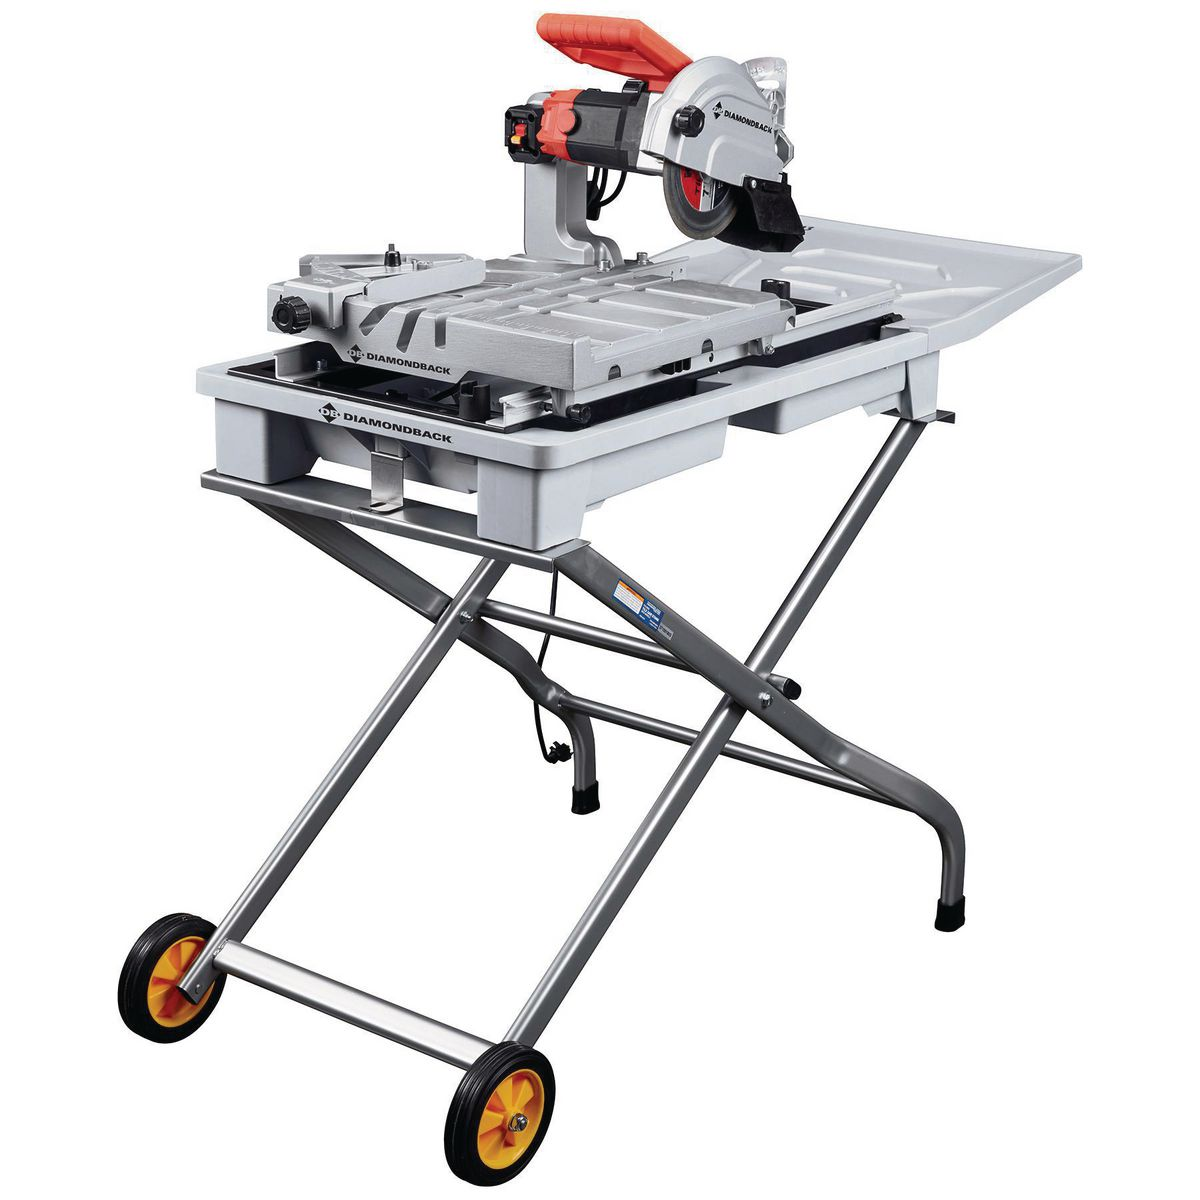 7 In Heavy Duty Wet Tile Saw With Sliding Table